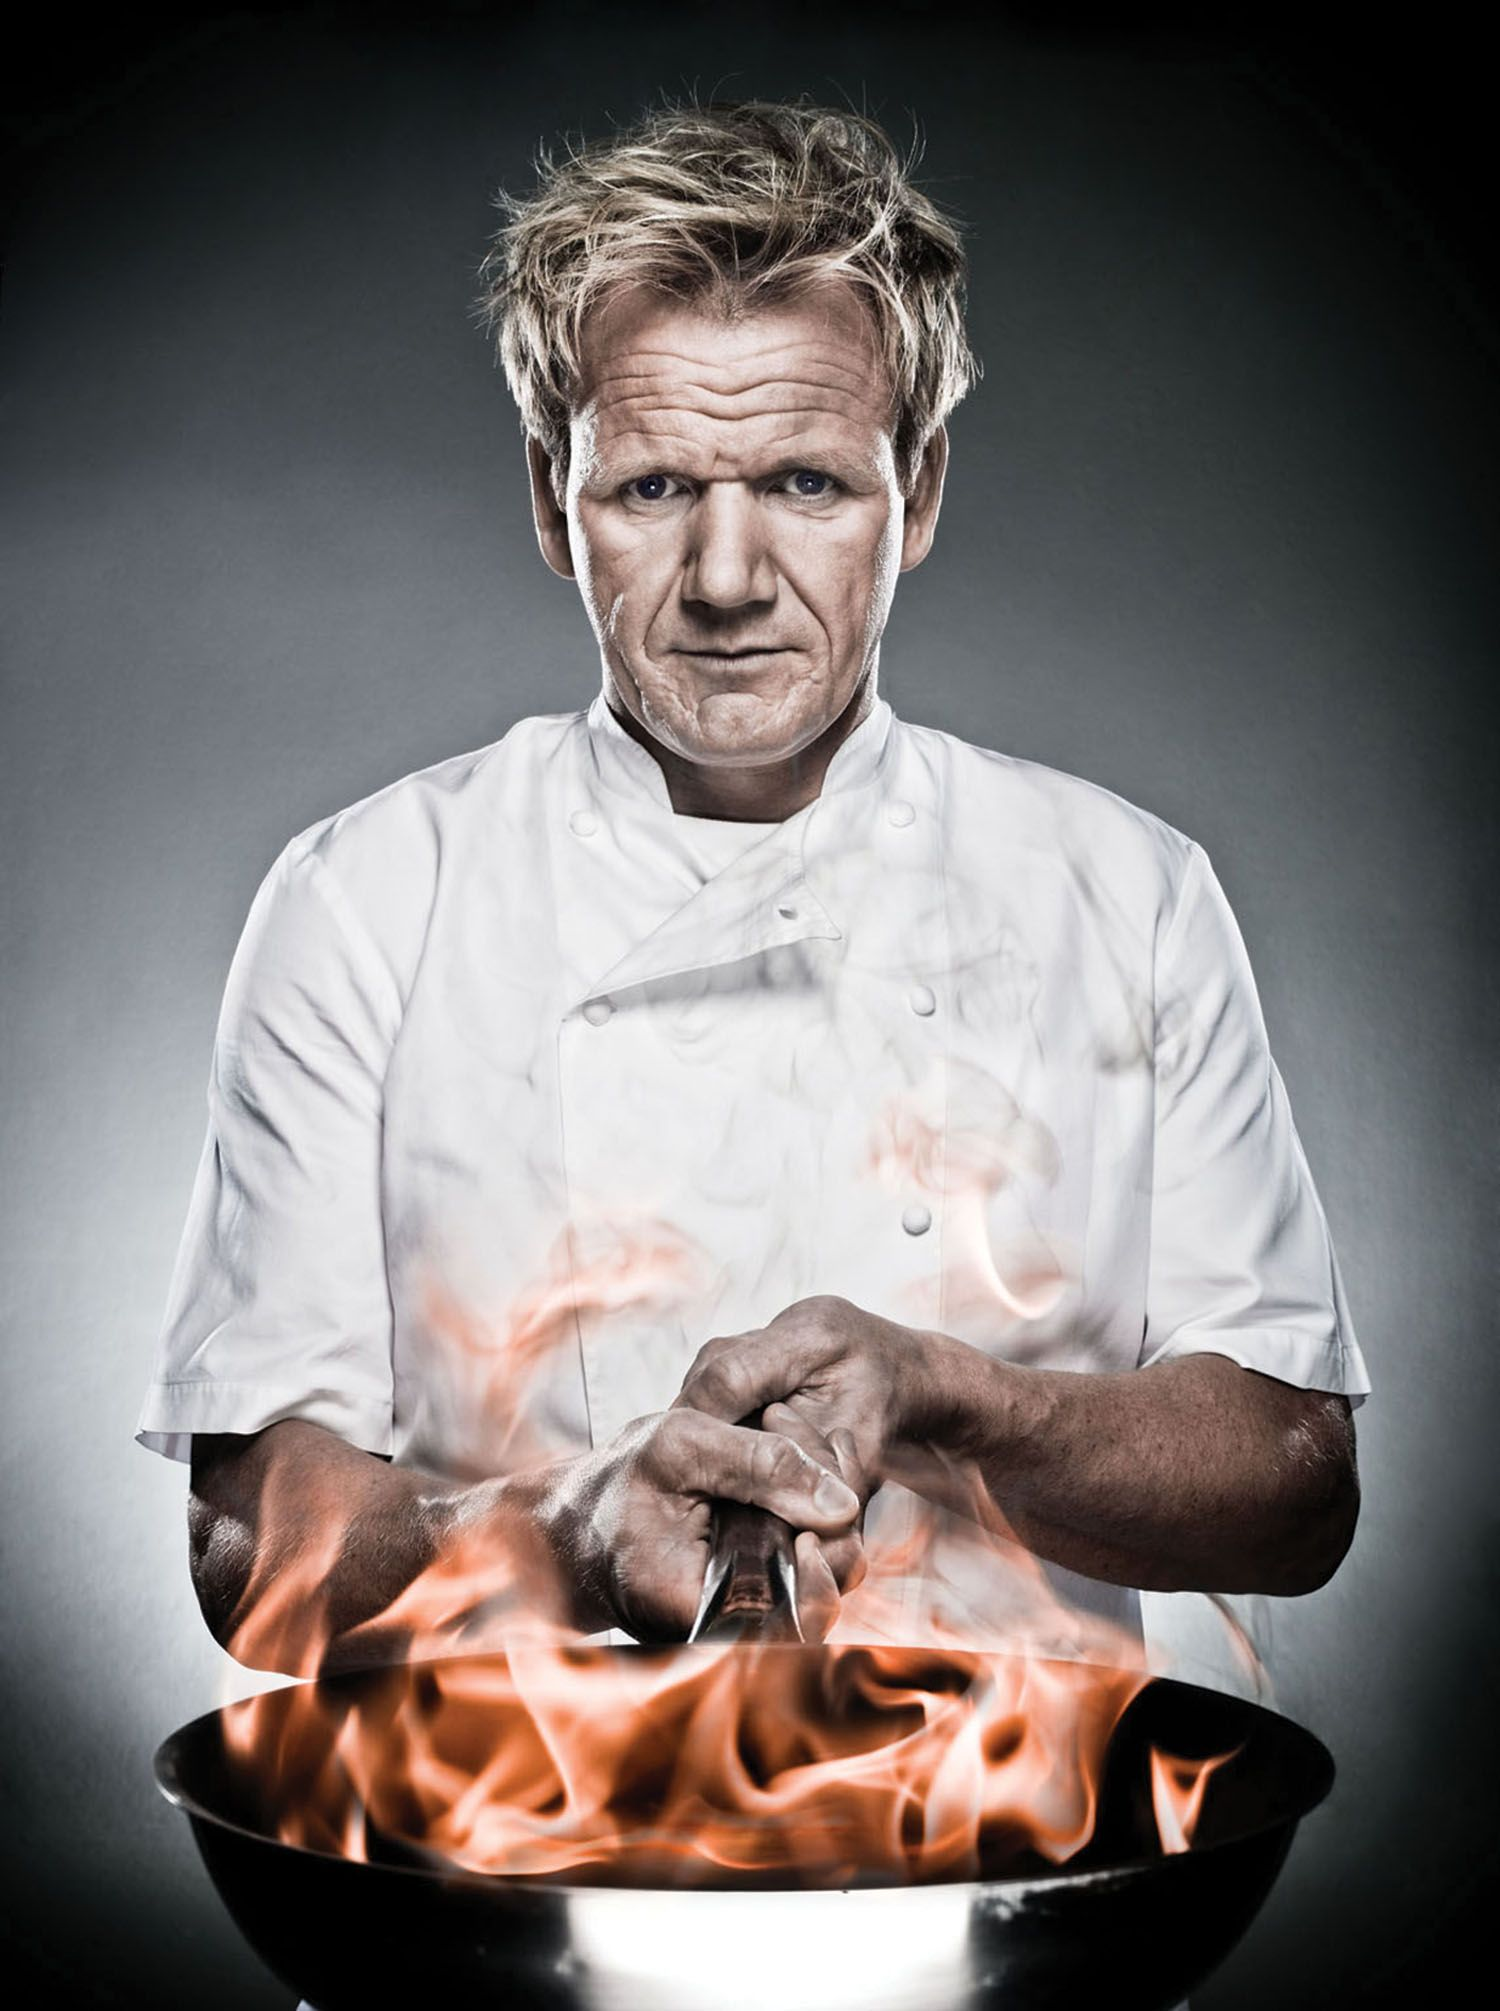 Gordon Ramsey Not my typical beauty, but he is one sexy mo fo ...